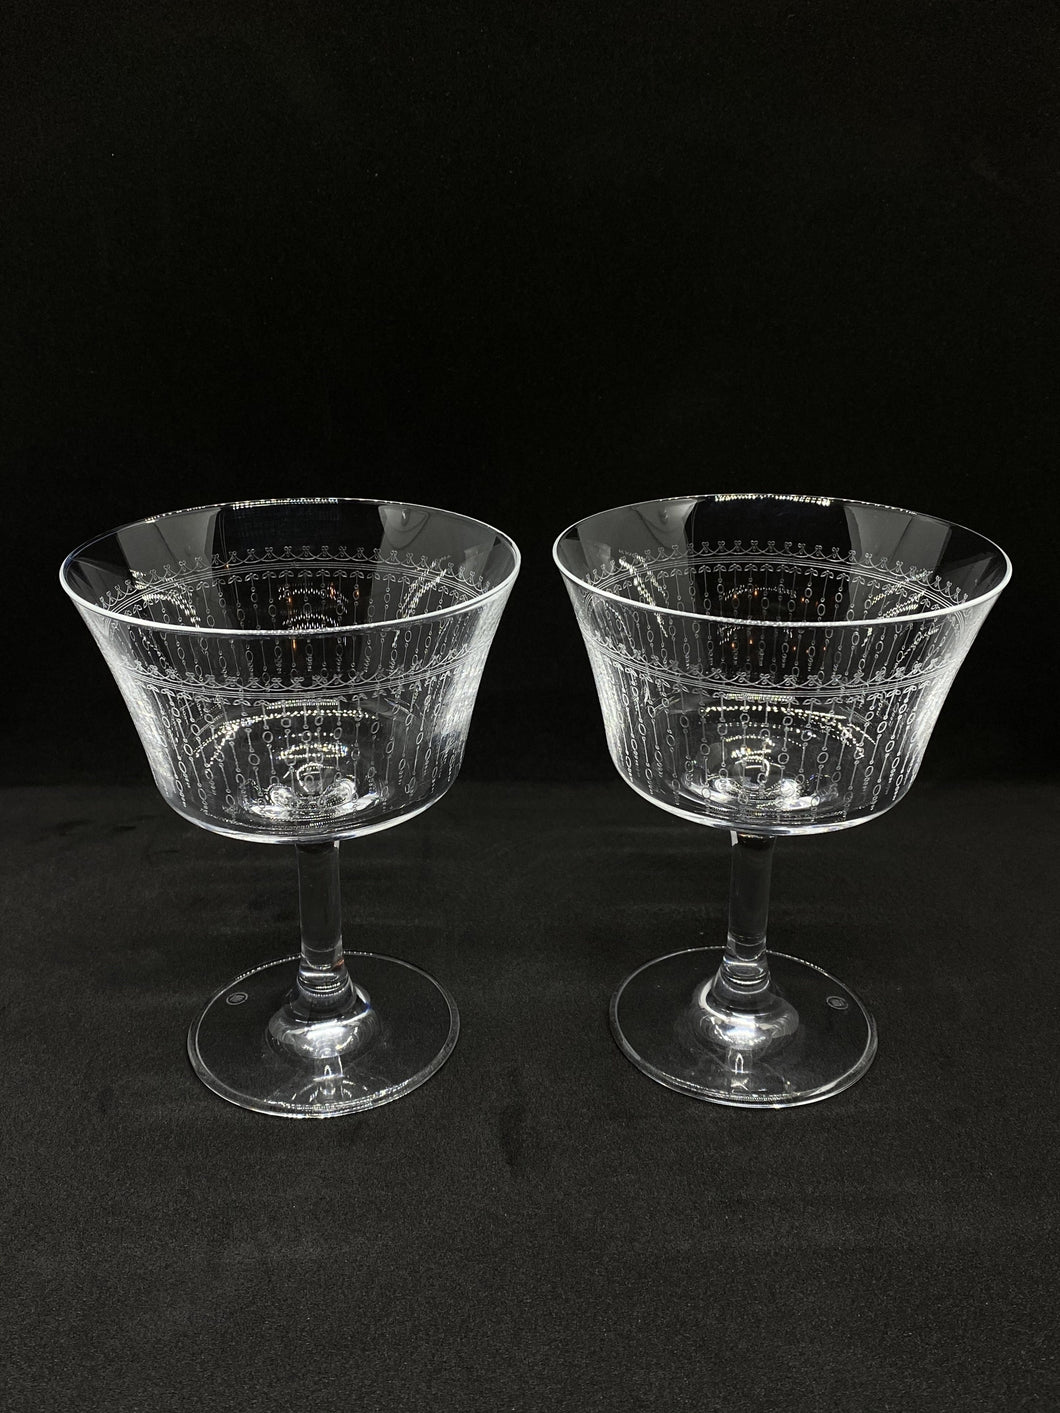 Pair of Vintage Style Cocktail Glasses (180ml size) - Edinburgh Booze Delivery